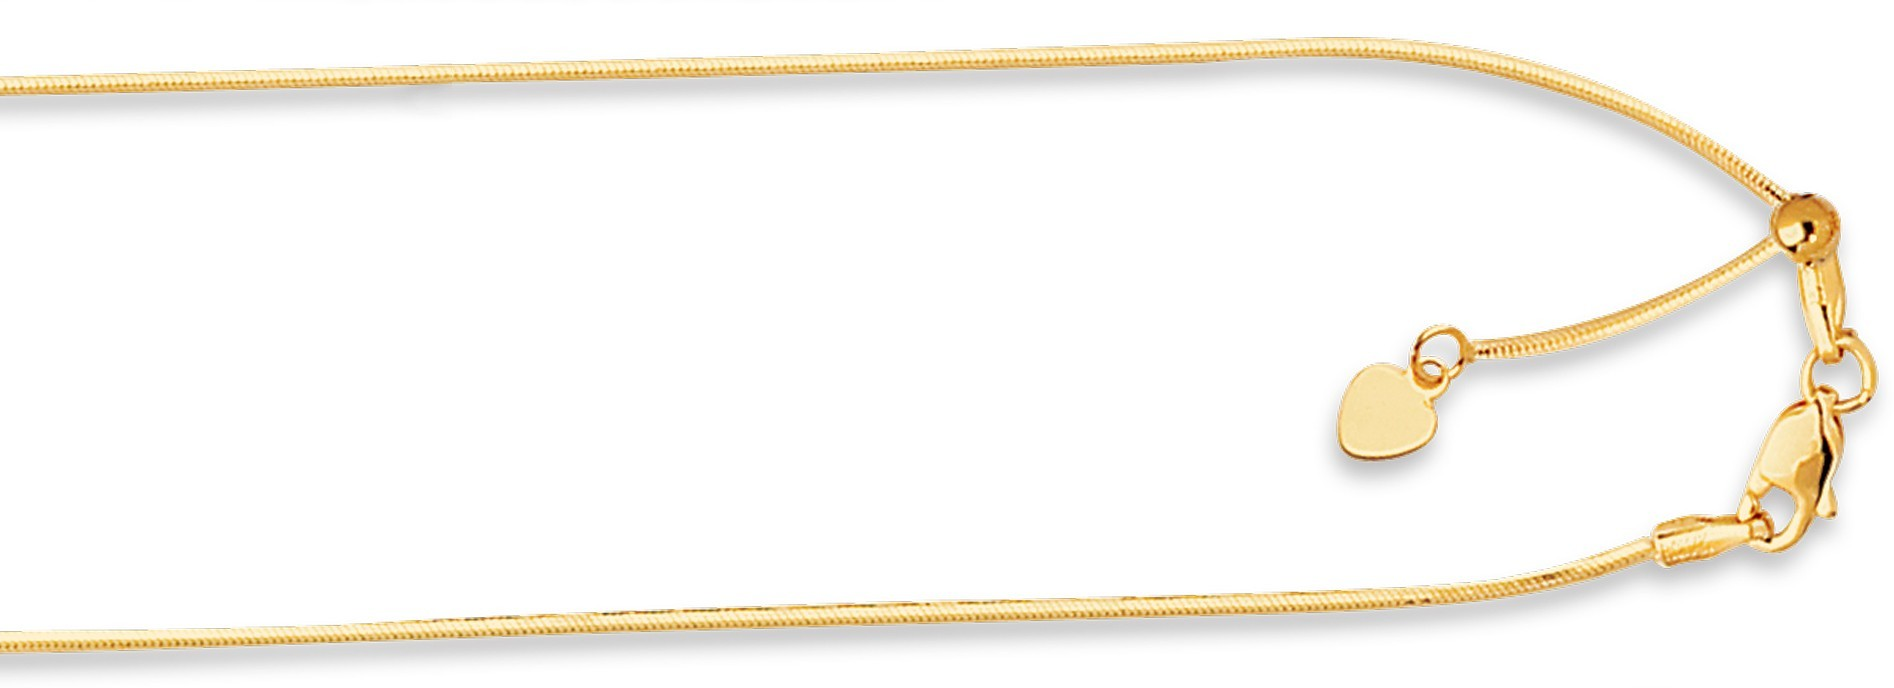 "22"" 14K Yellow Gold .85mm (0.03"") Polished Diamond Cut Adjustable Octagonal Chain w/ Lobster Clasp"